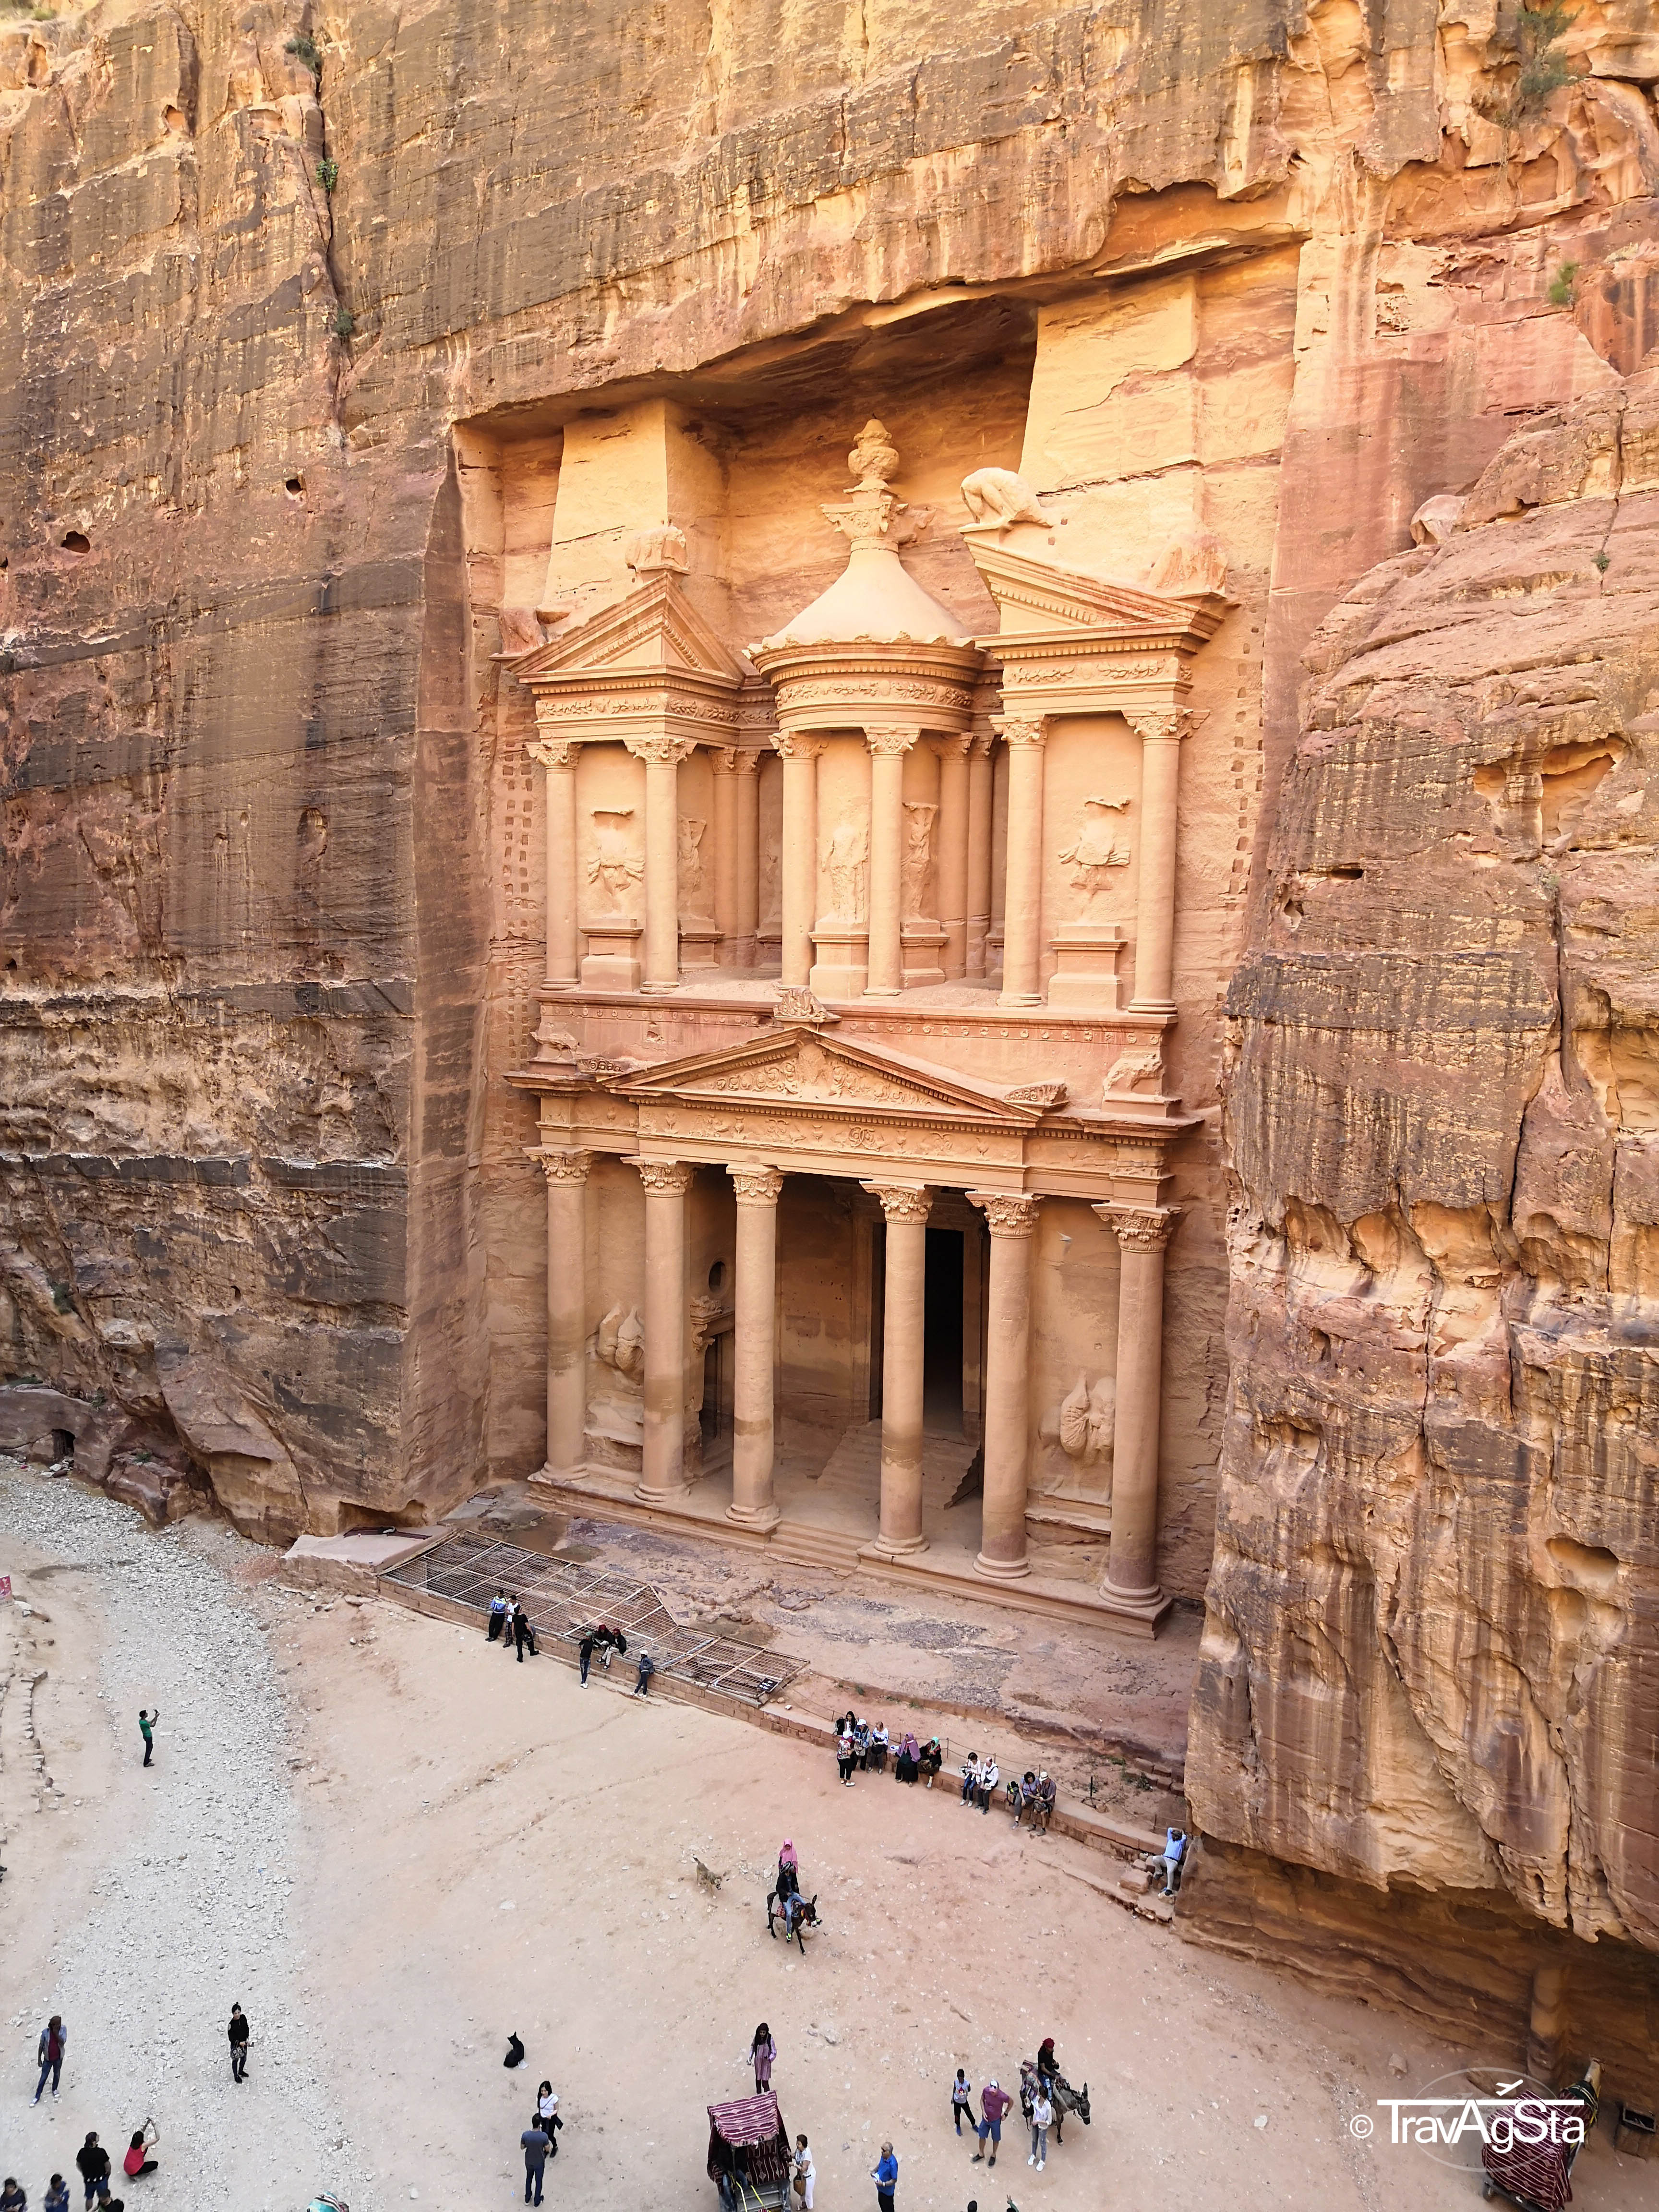 Petra, Jordan: One of the New 7 Wonders of the World!